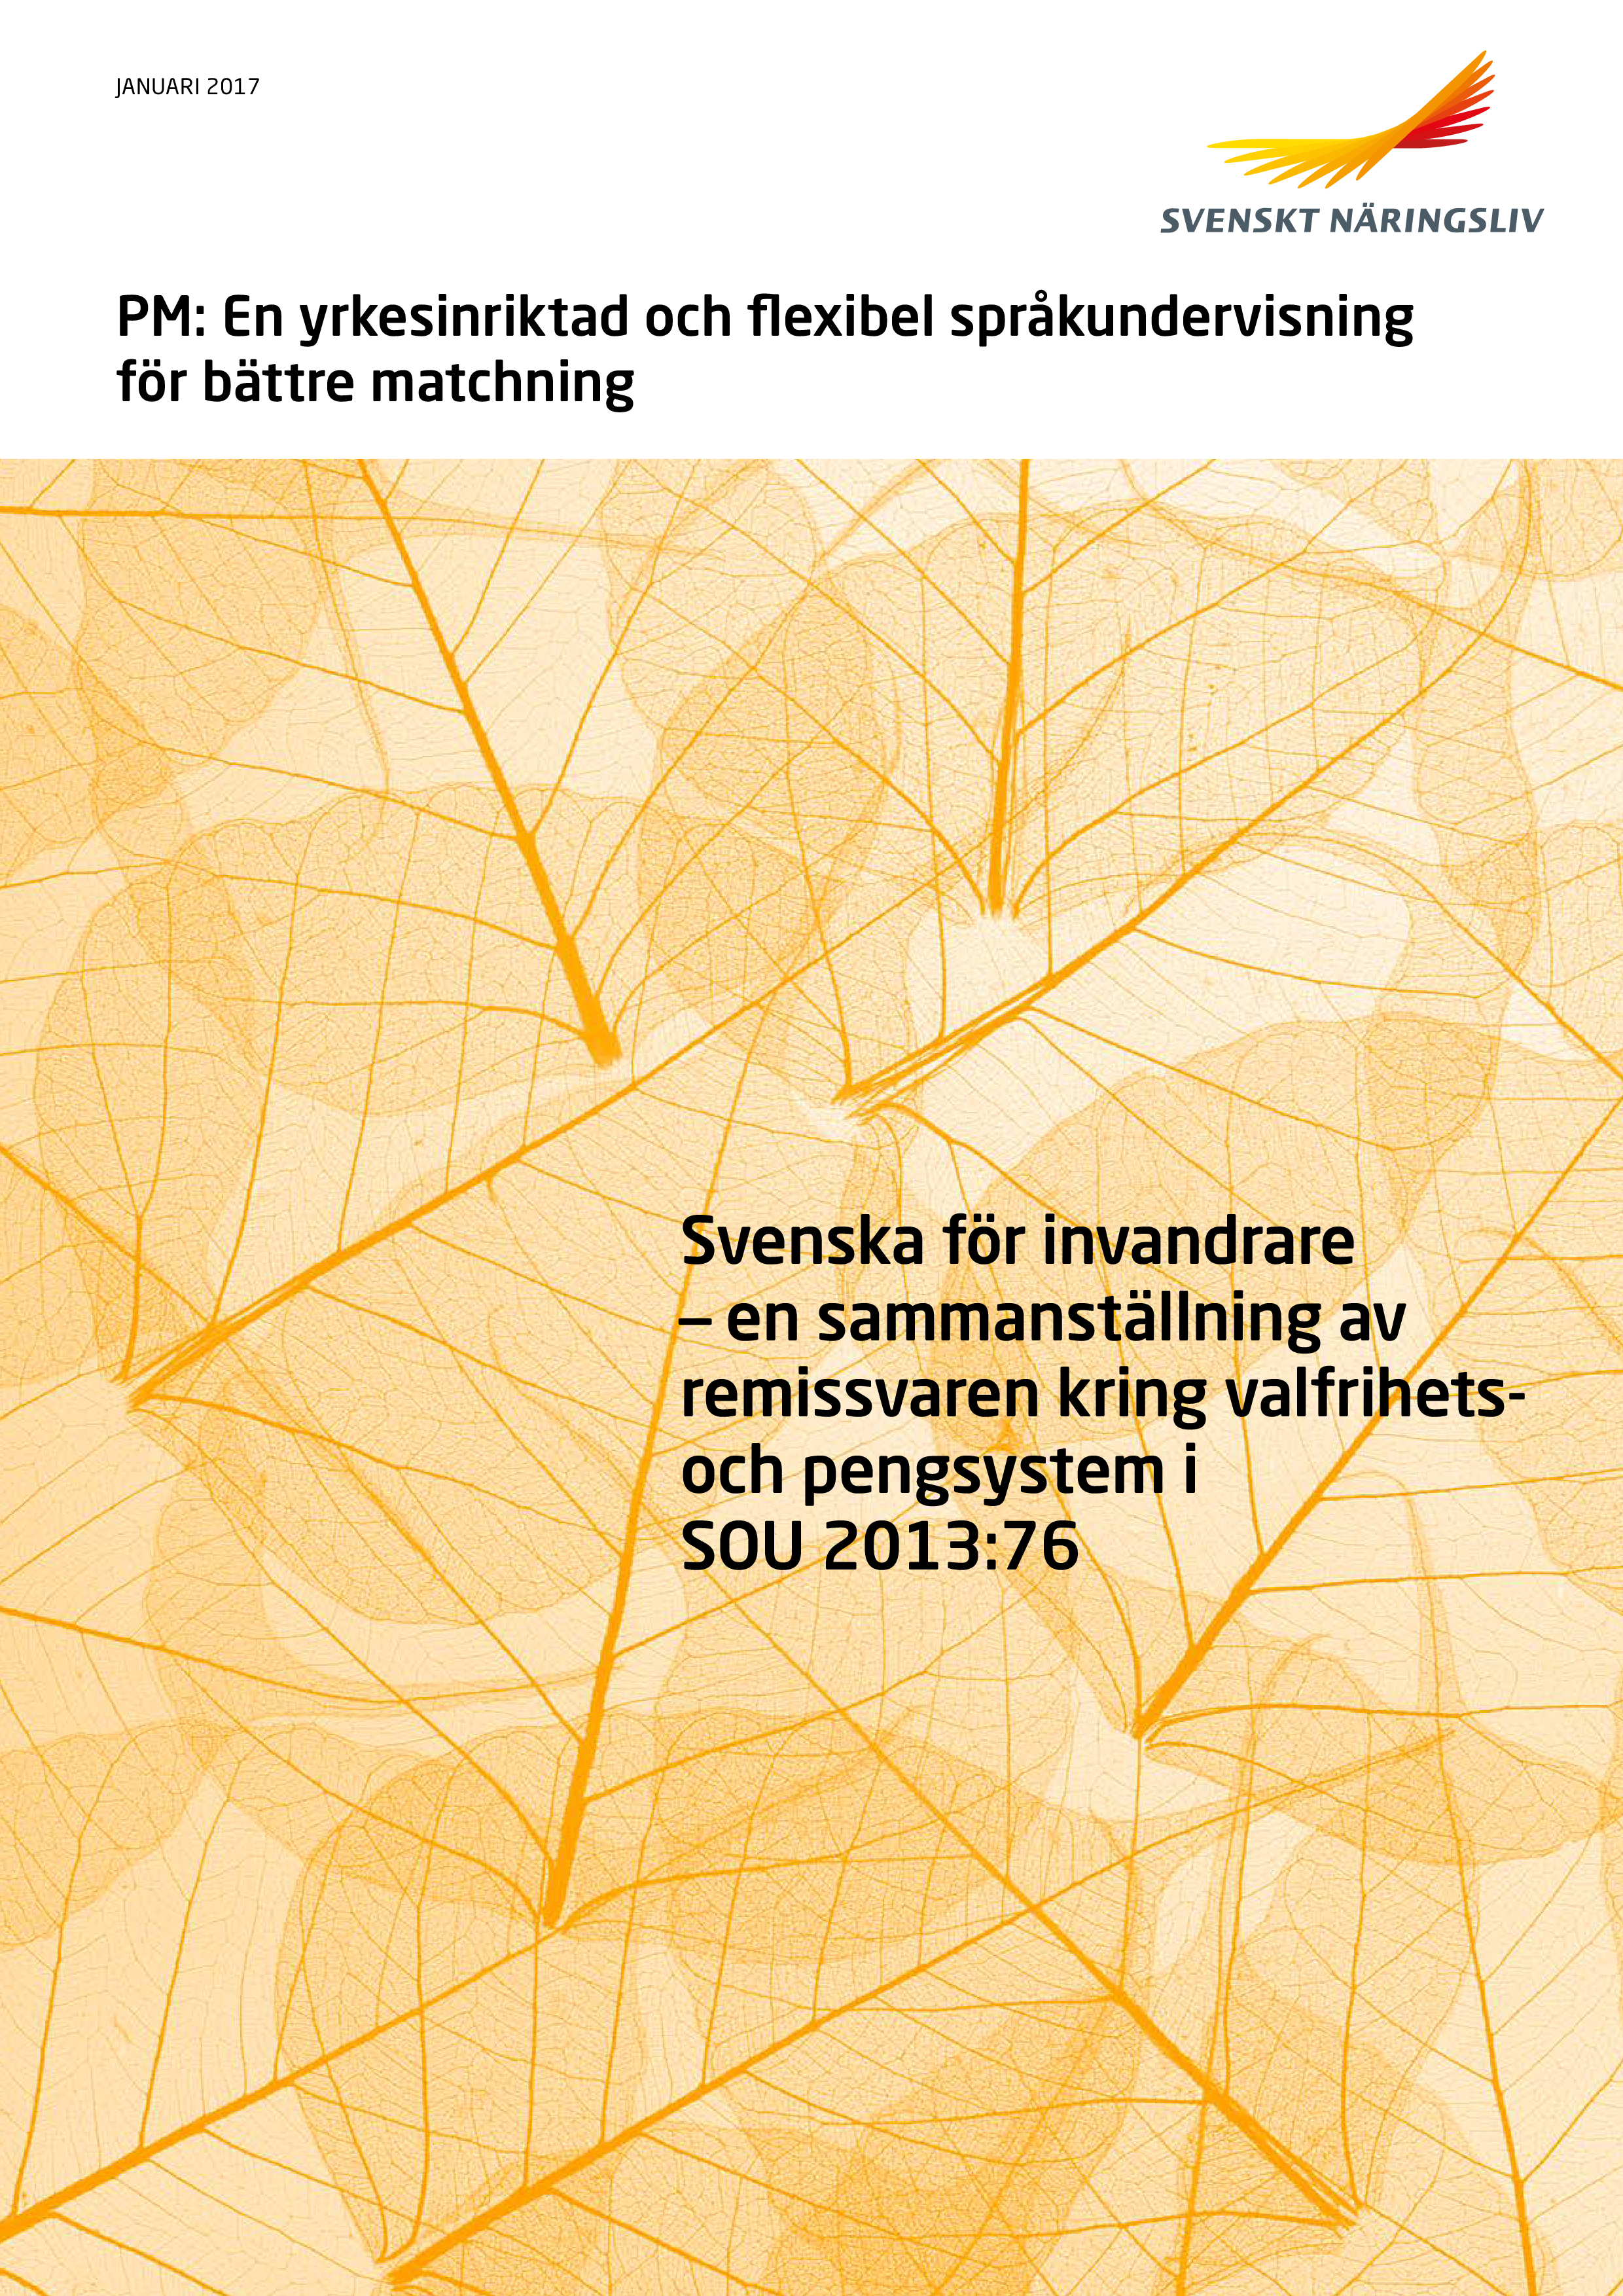 Sfi_for_battre_matchning.pdf